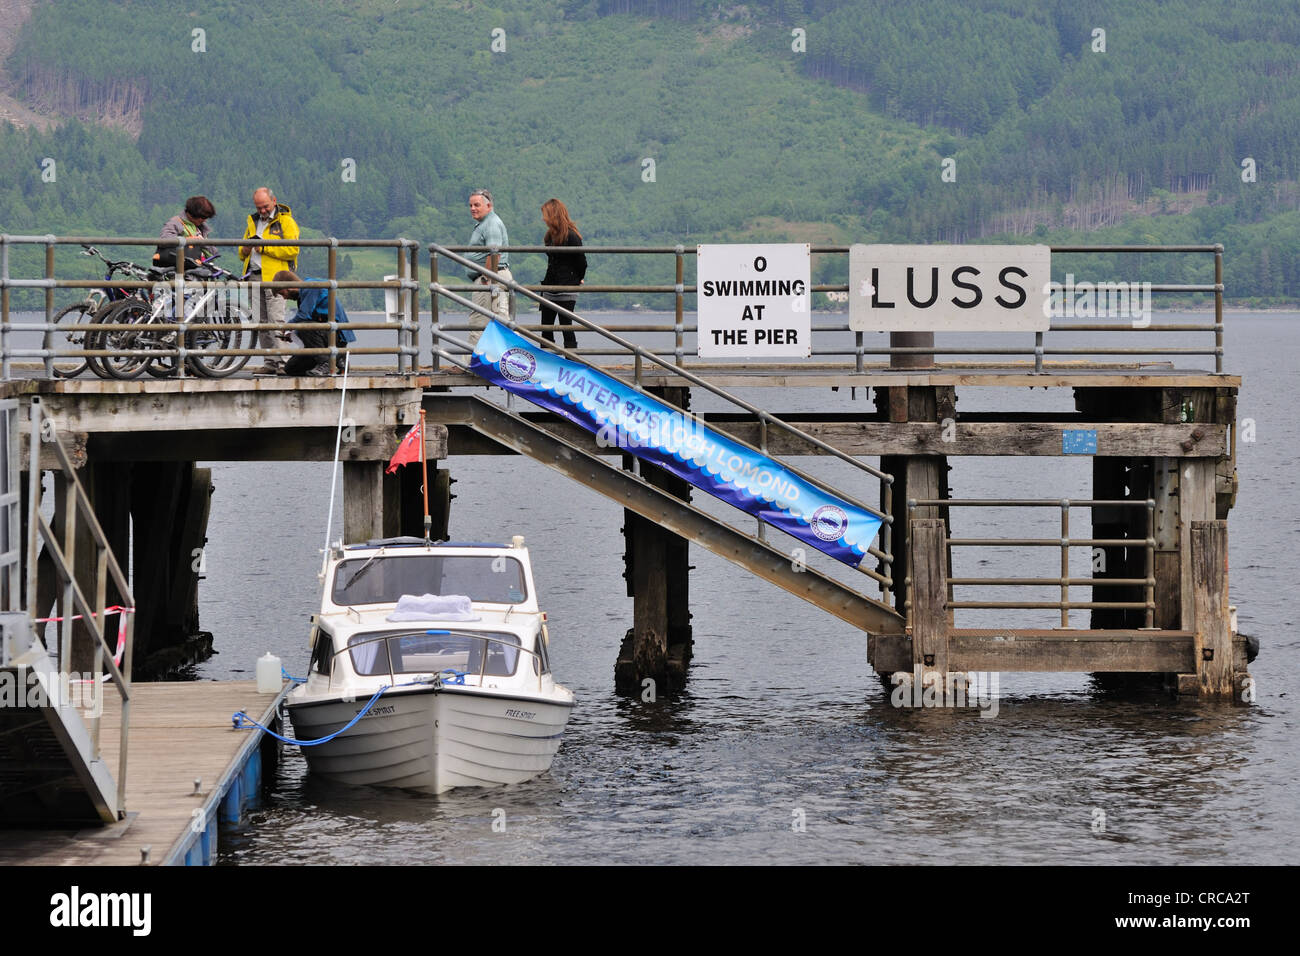 Visitors/tourists are attracted to beautiful Luss village and the pier,  Loch Lomond, Argyll, Scotland - Stock Image